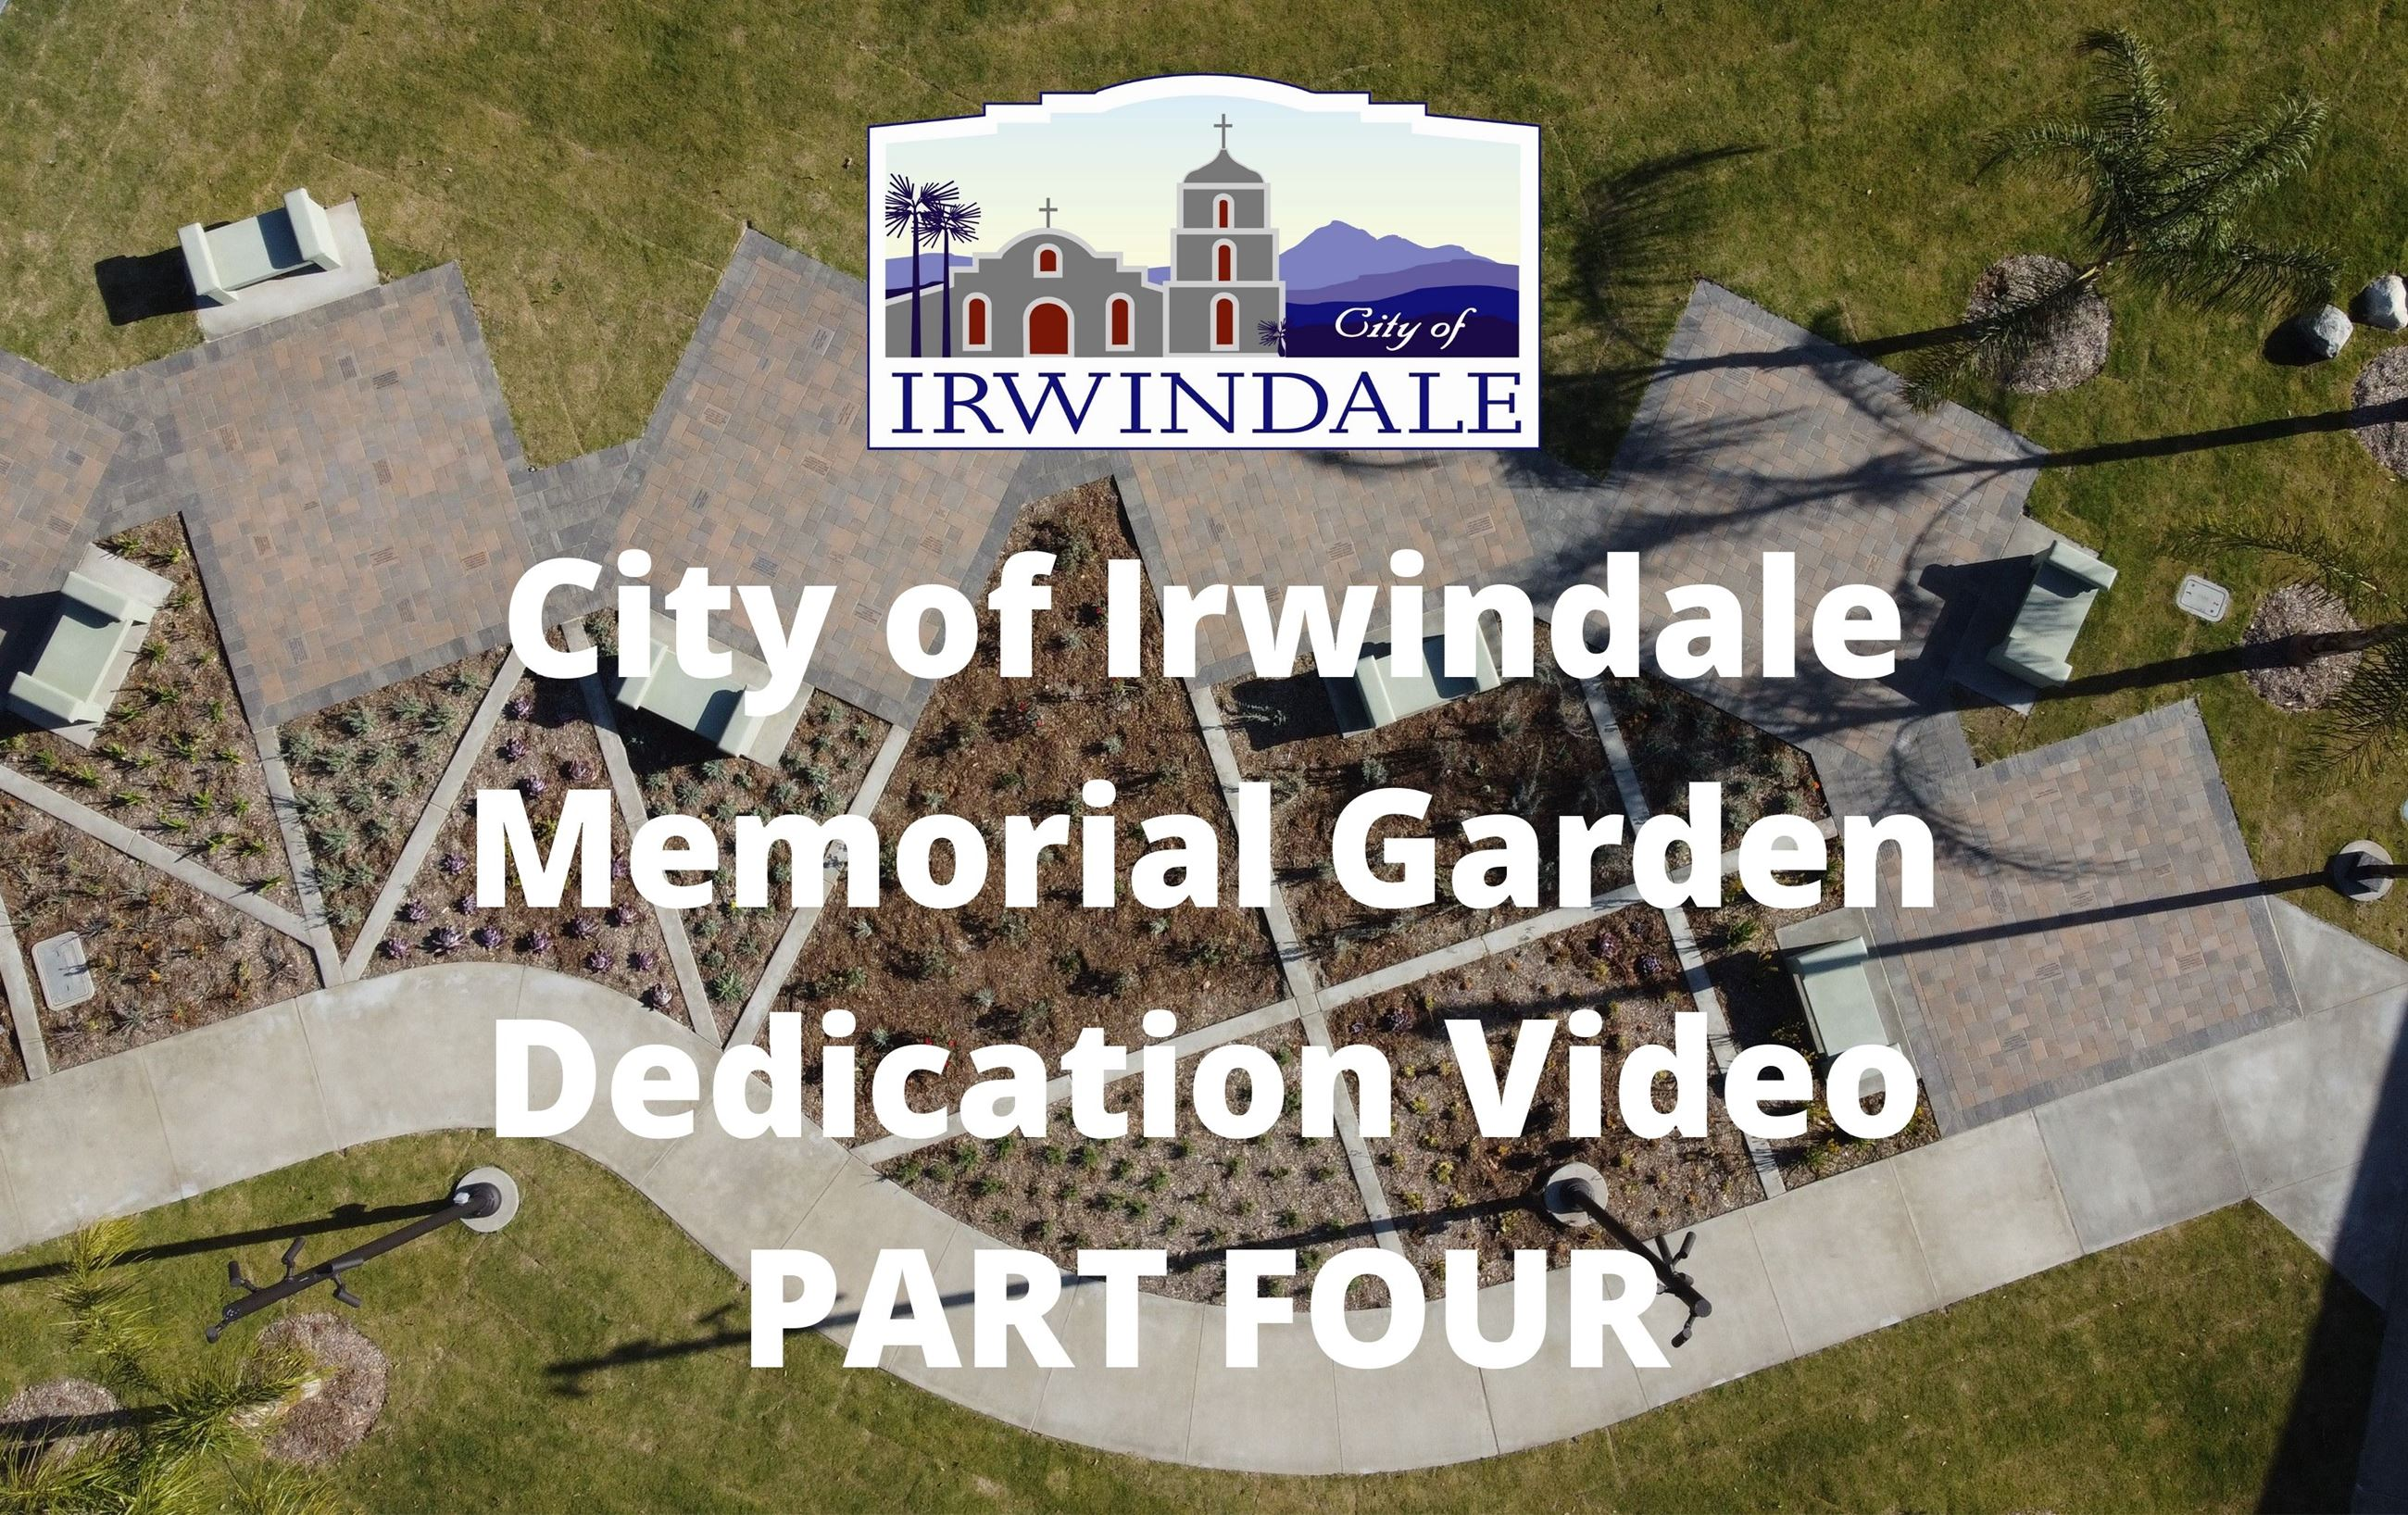 City of Irwindale Memorial Garden Dedication Video Part Four